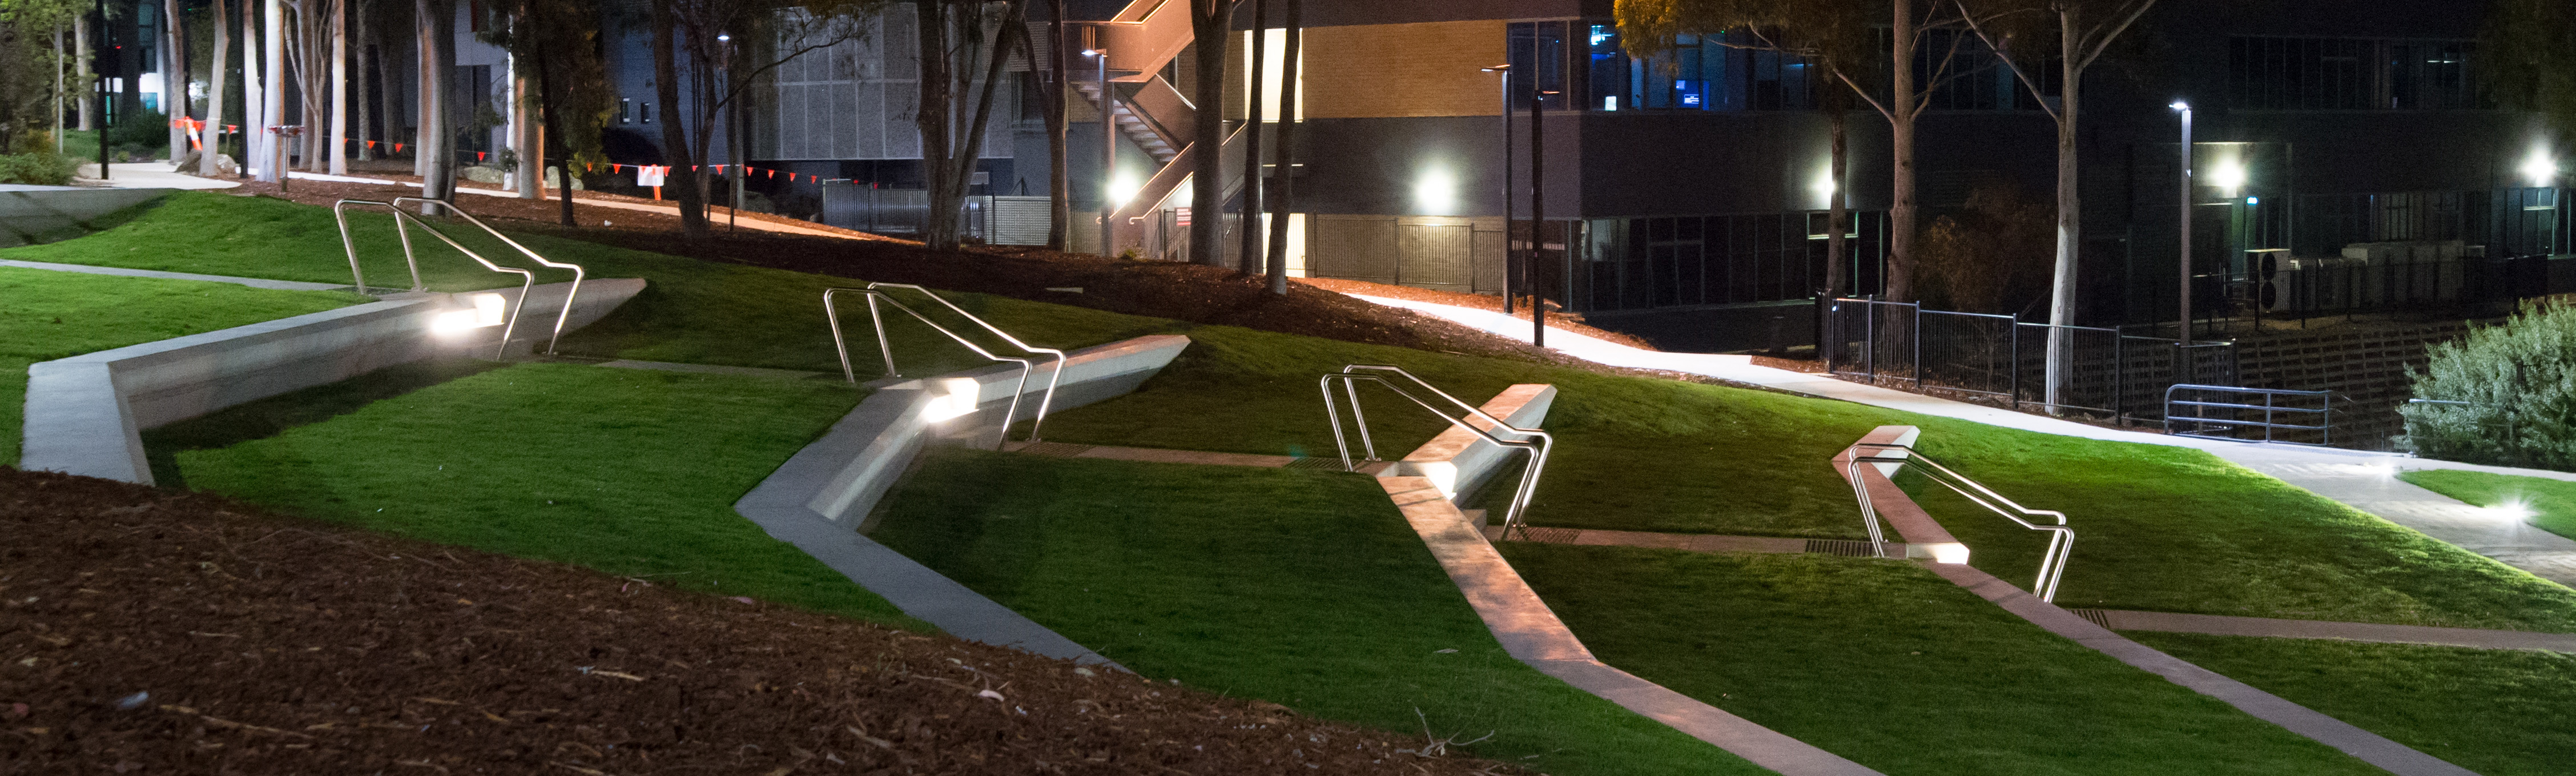 Landscape nighttime view of the Waurn Ponds Amphitheatre with lighting